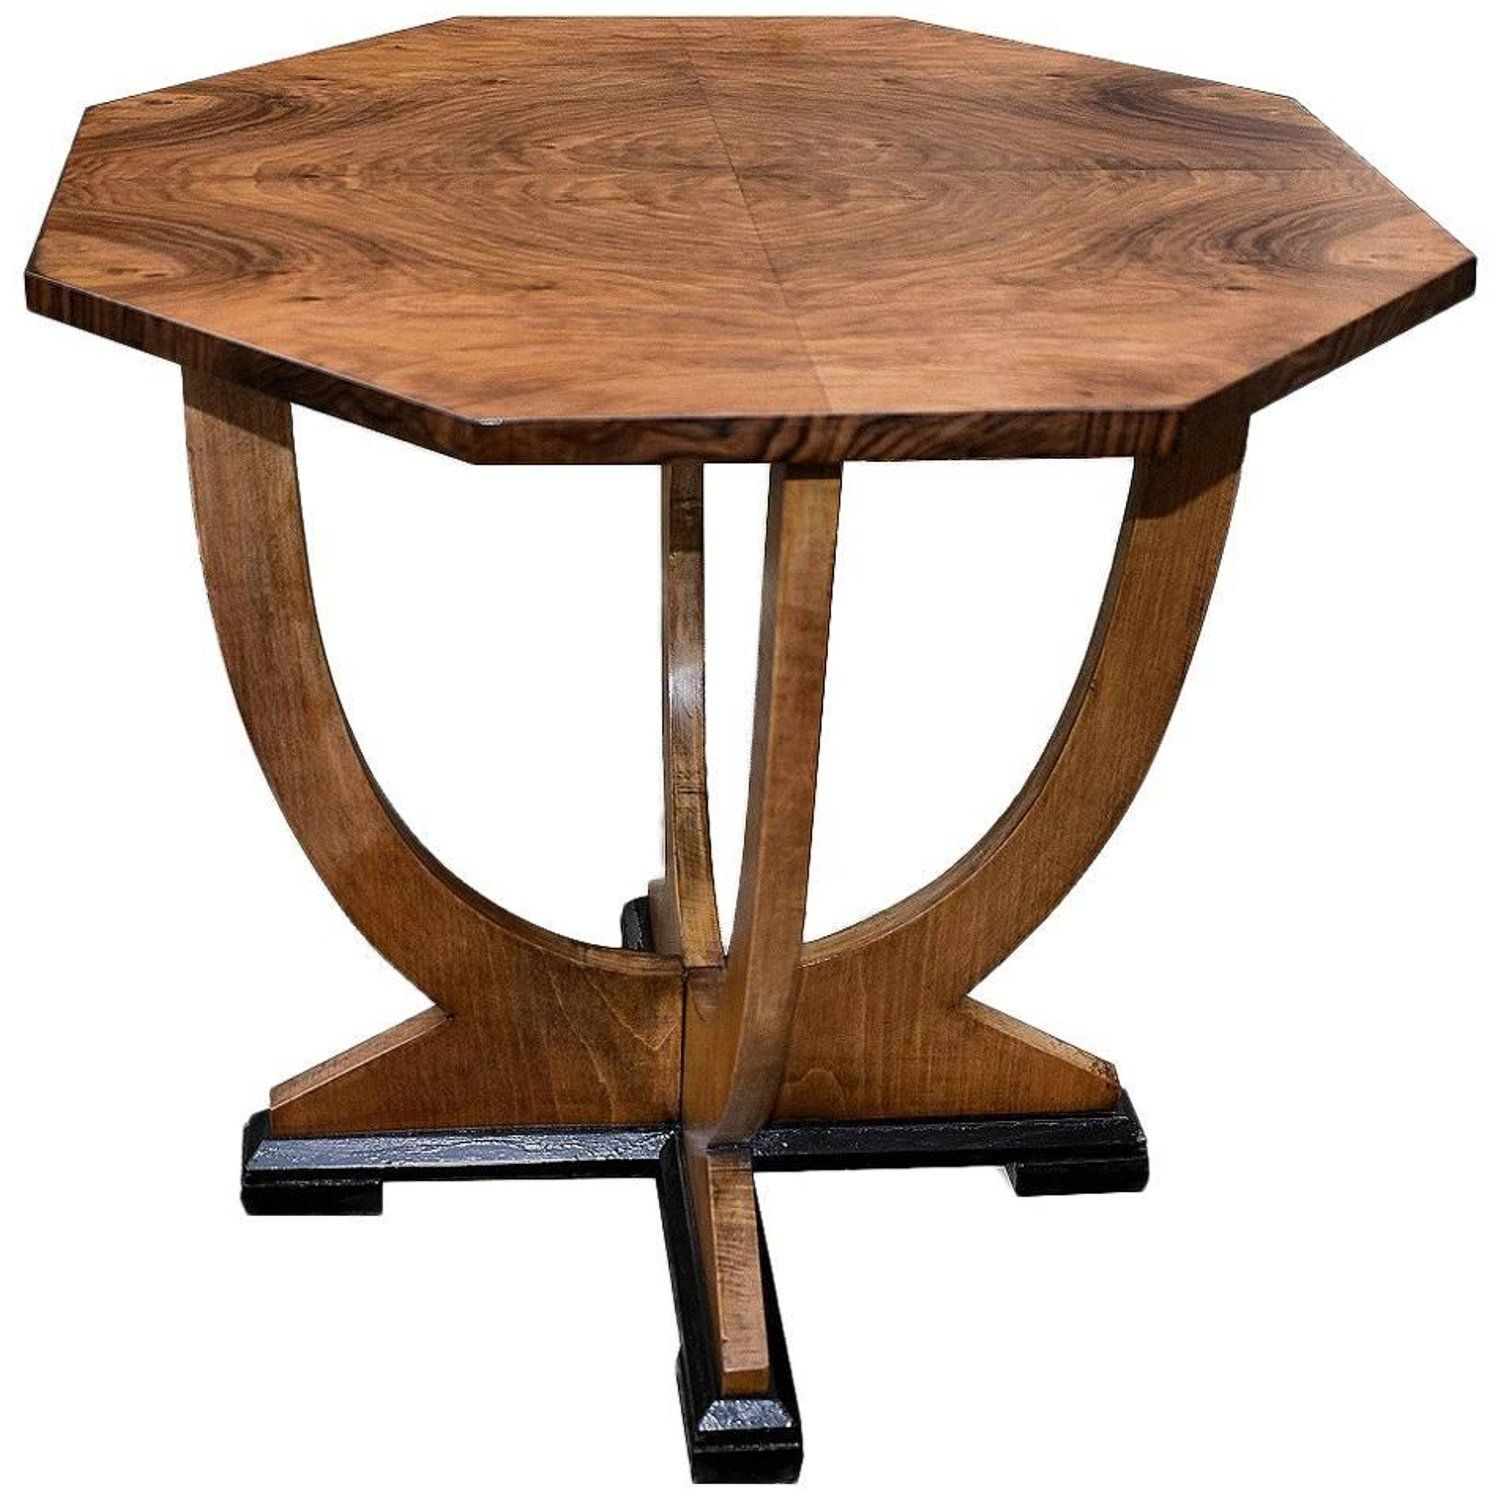 Original English 1930S Art Deco Walnut Occasional Table